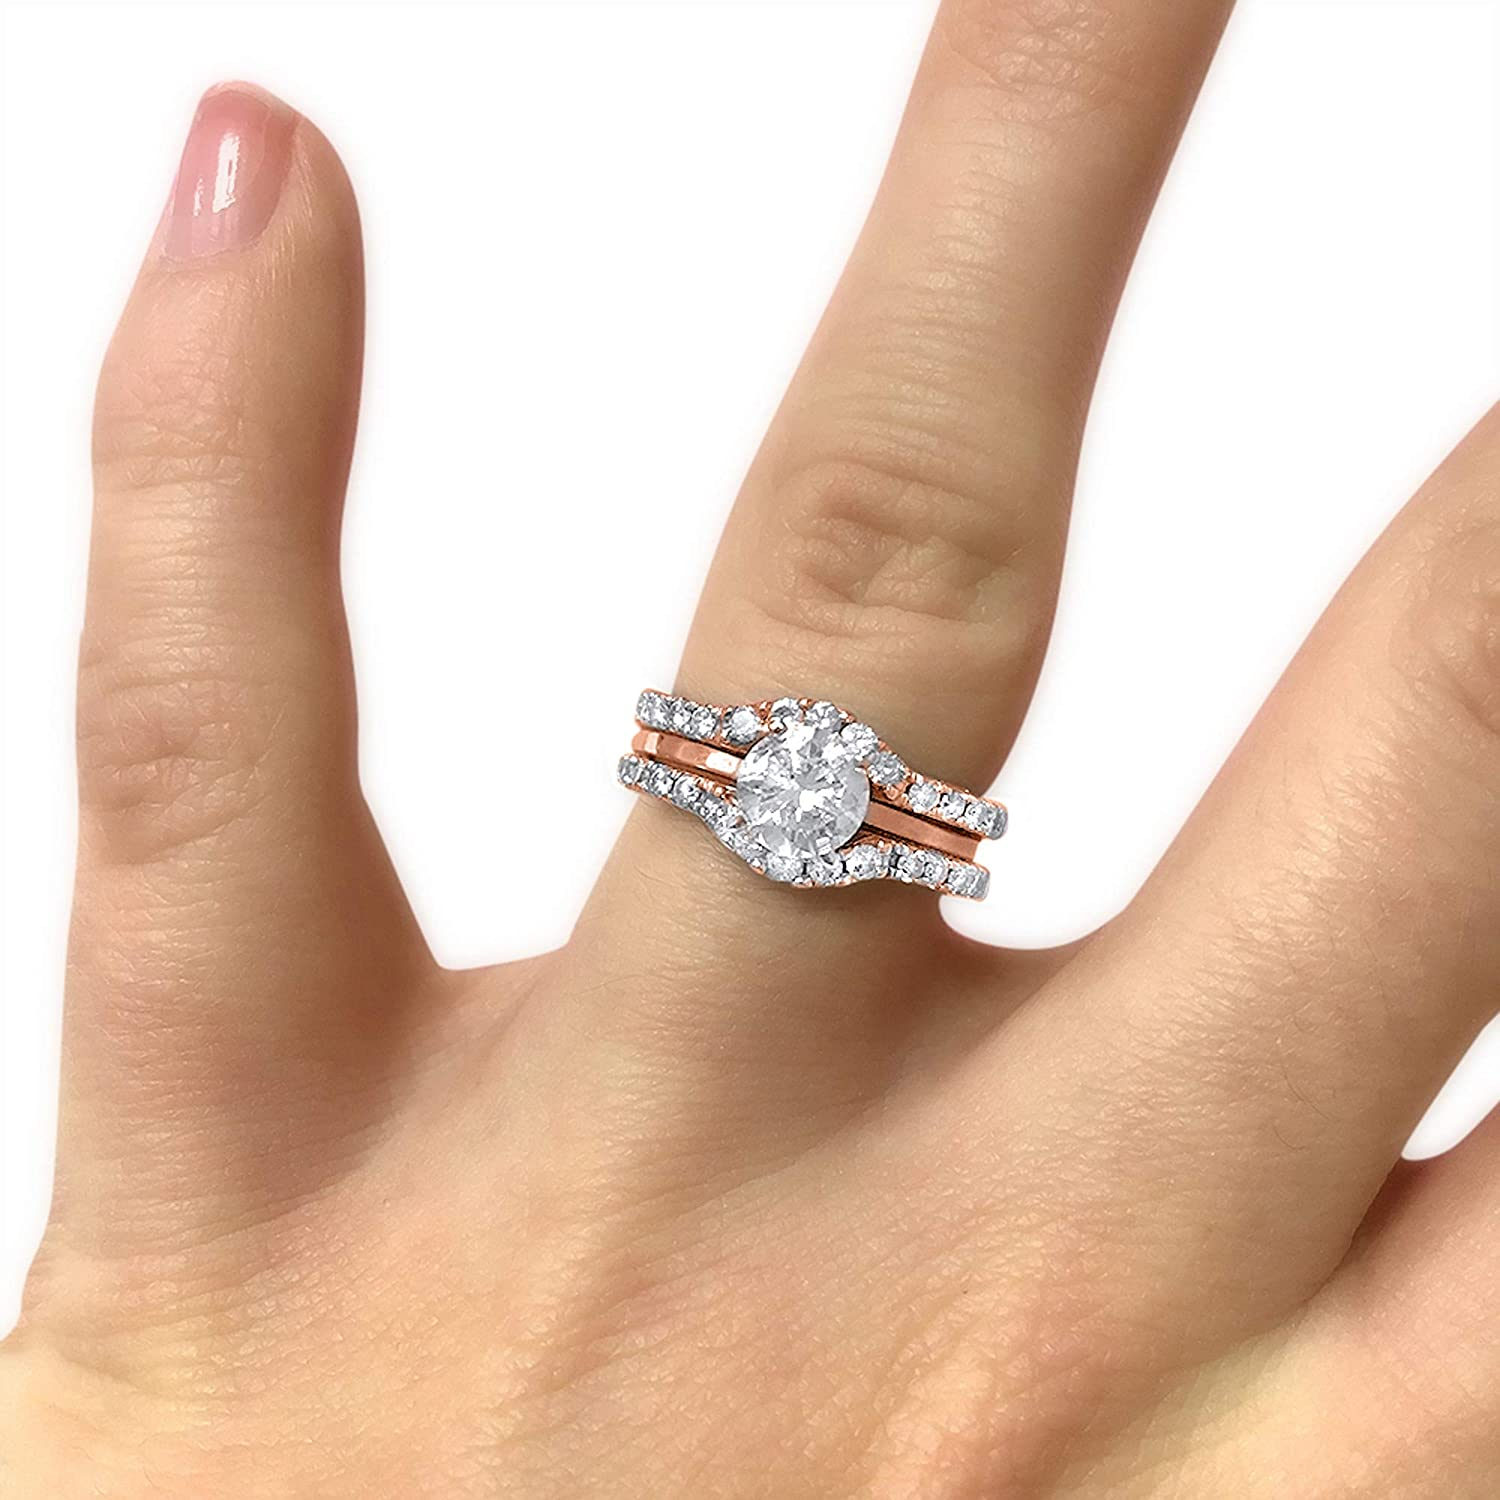 Unique Branch Wedding Rings Moissanite Band Moissanite Wedding Band Women Wedding Bands Women Moissanite Ring 14K White Gold Twig Ring